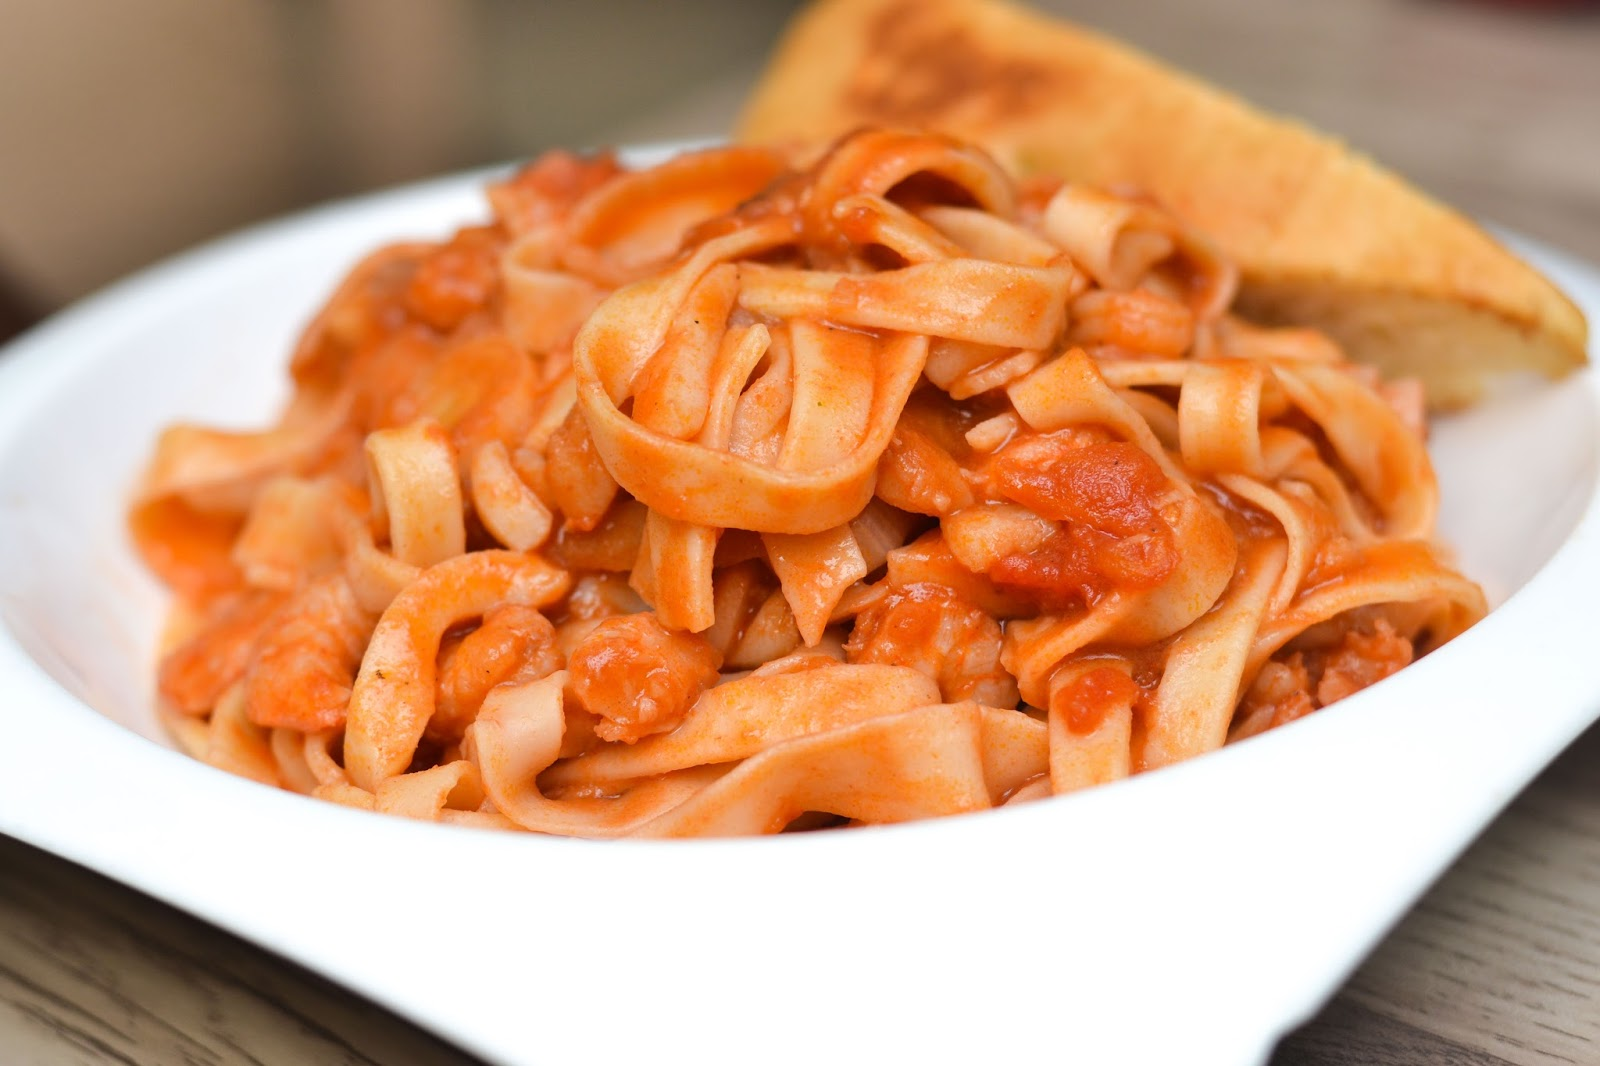 tagliatelle and tomato sauce in nigeria